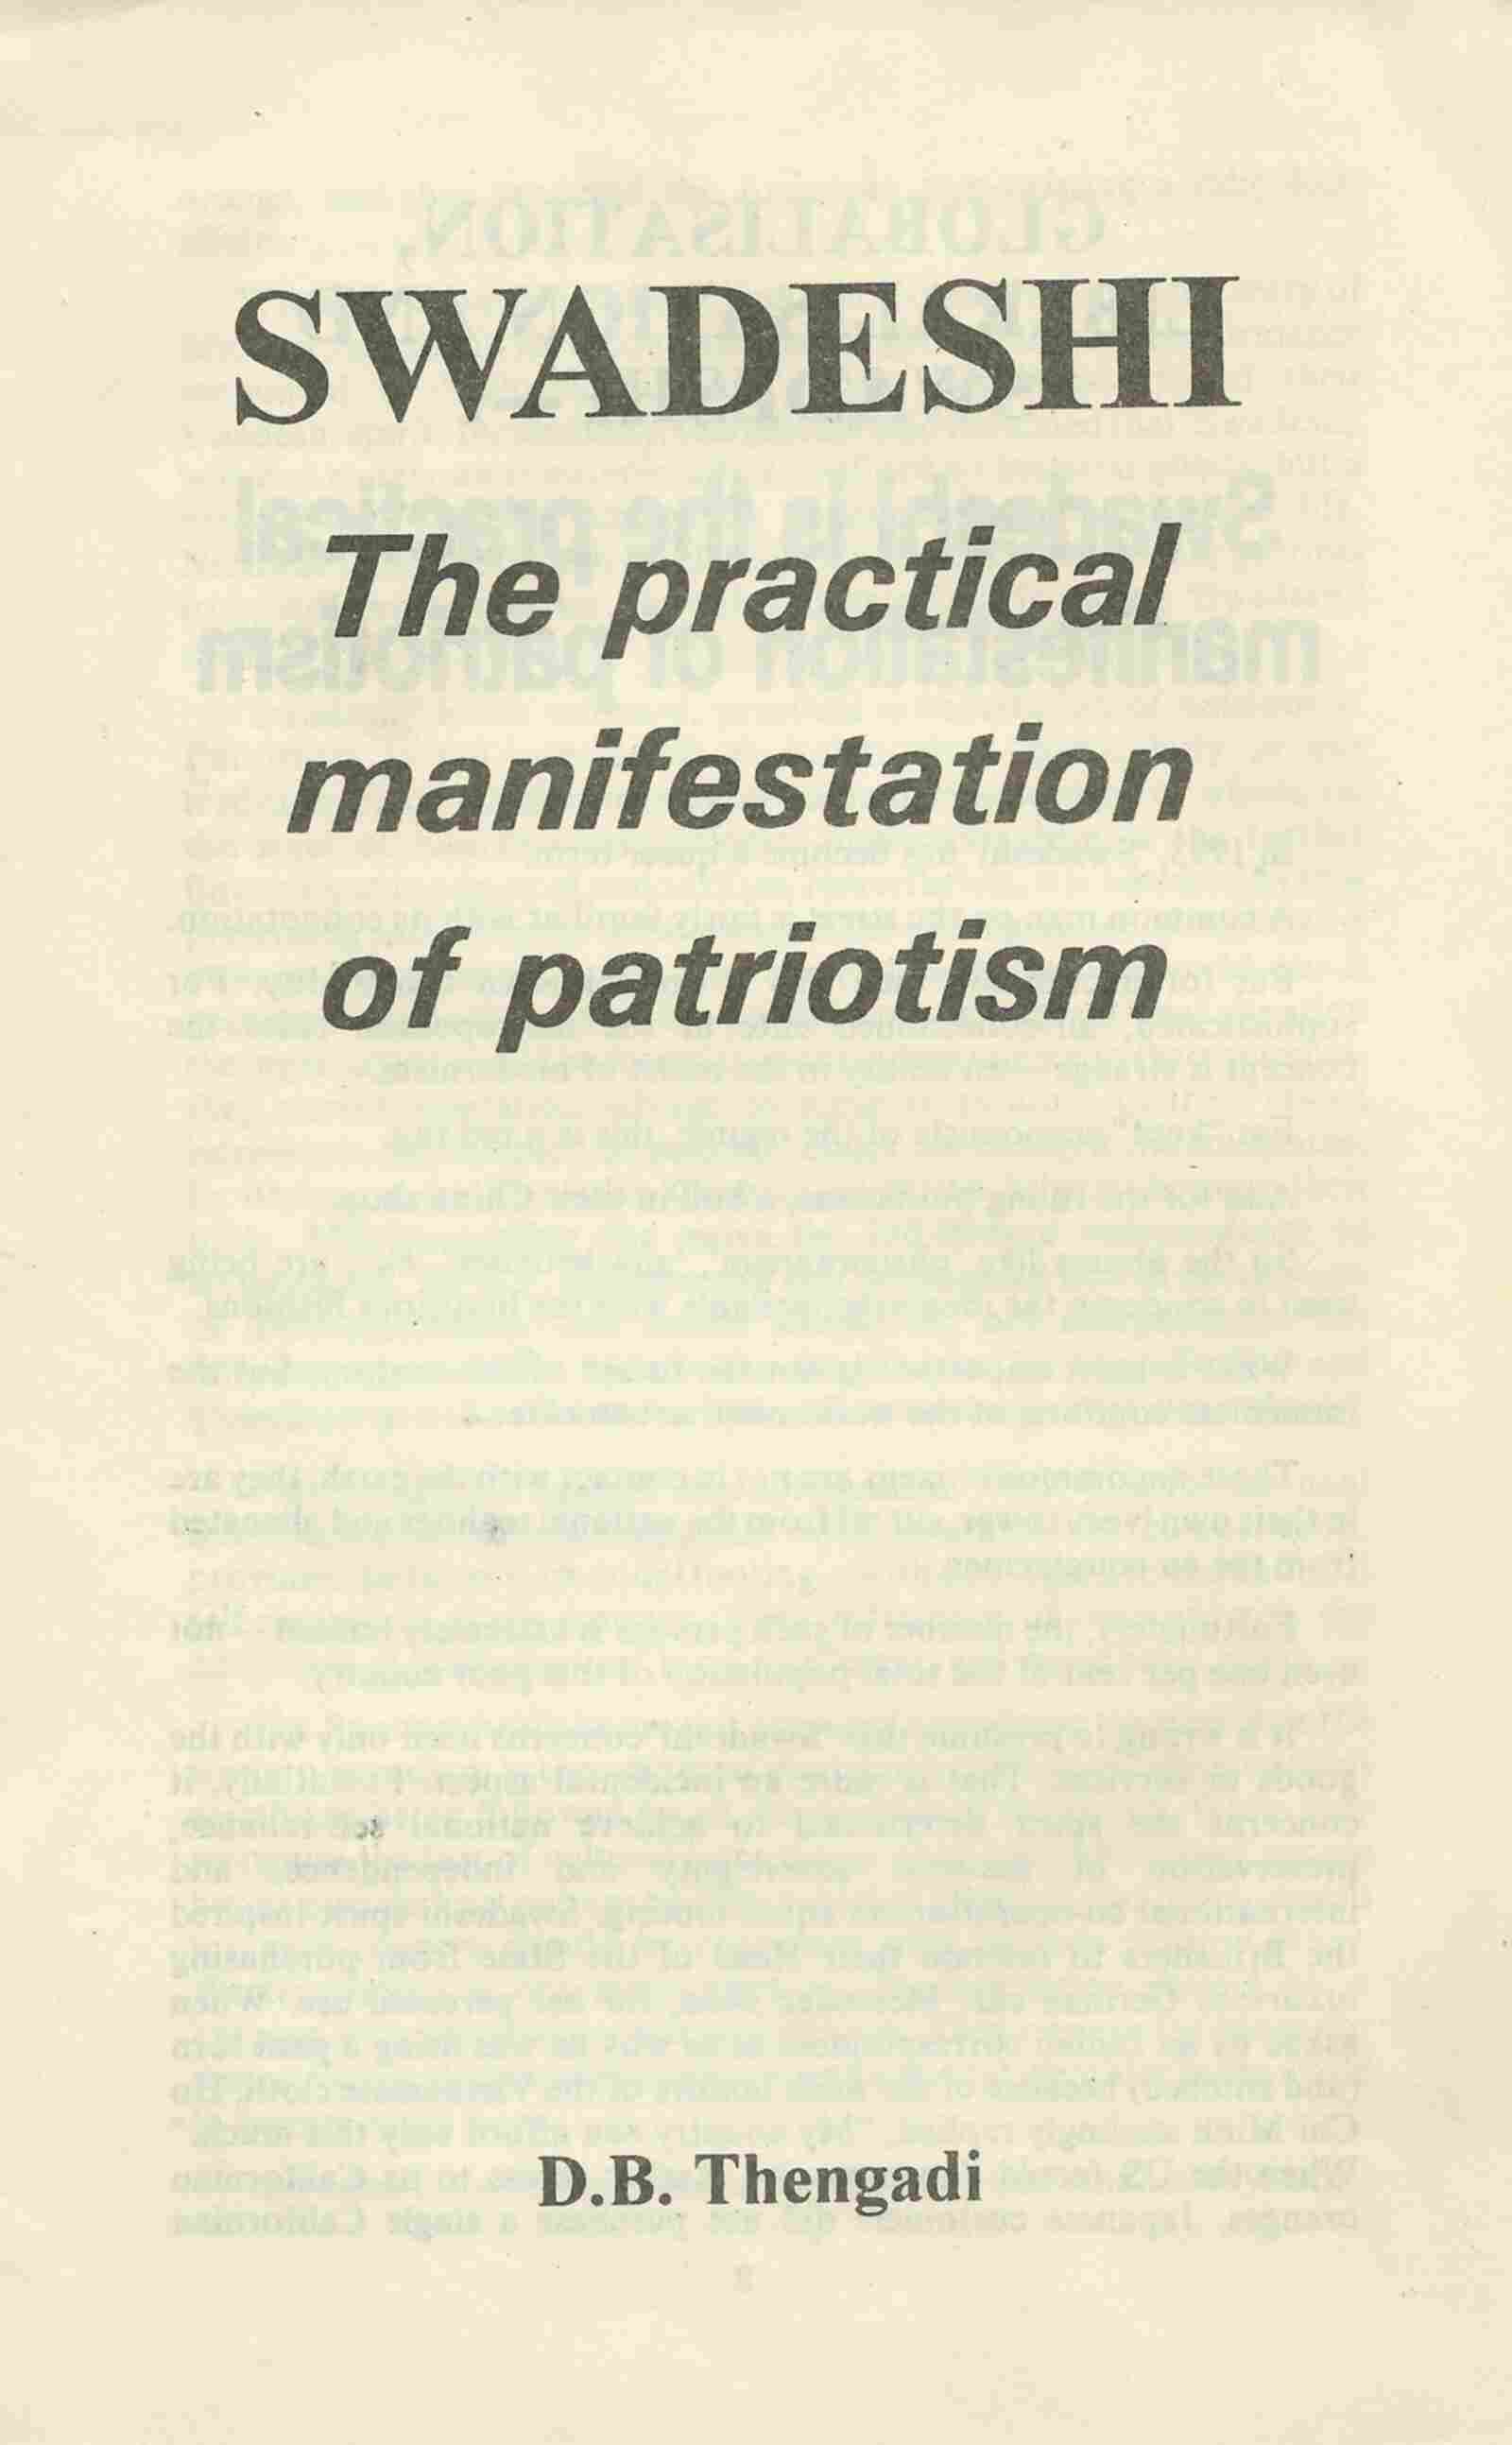 Swadeshi The Practical manifestaion of patriotism